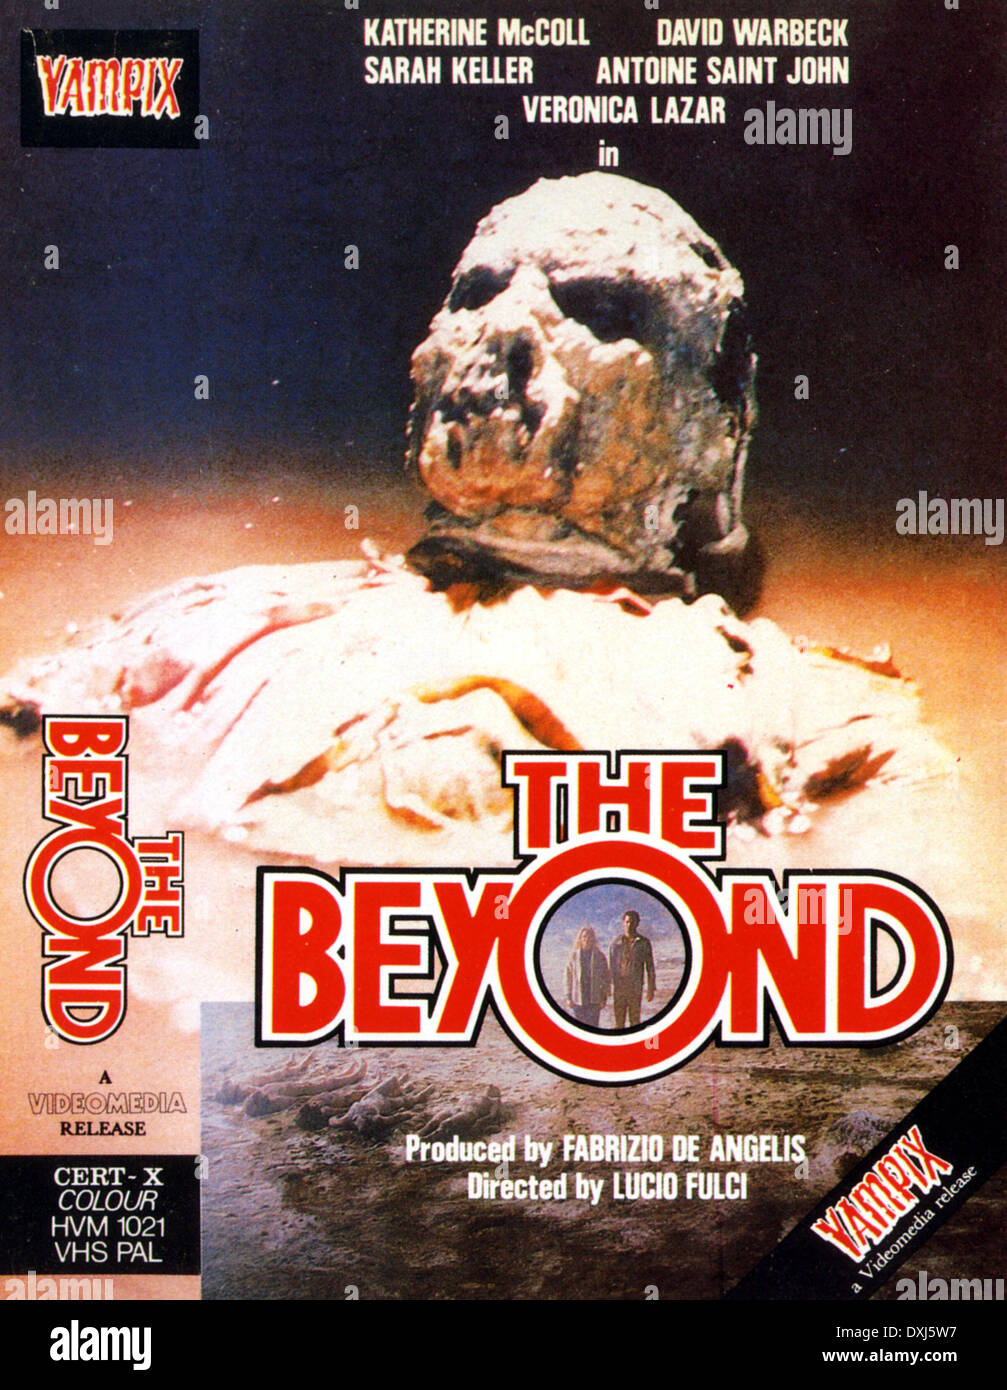 THE BEYOND (1981) PICTURE FROM THE RONALD GRANT ARCHIVE THE - Stock Image